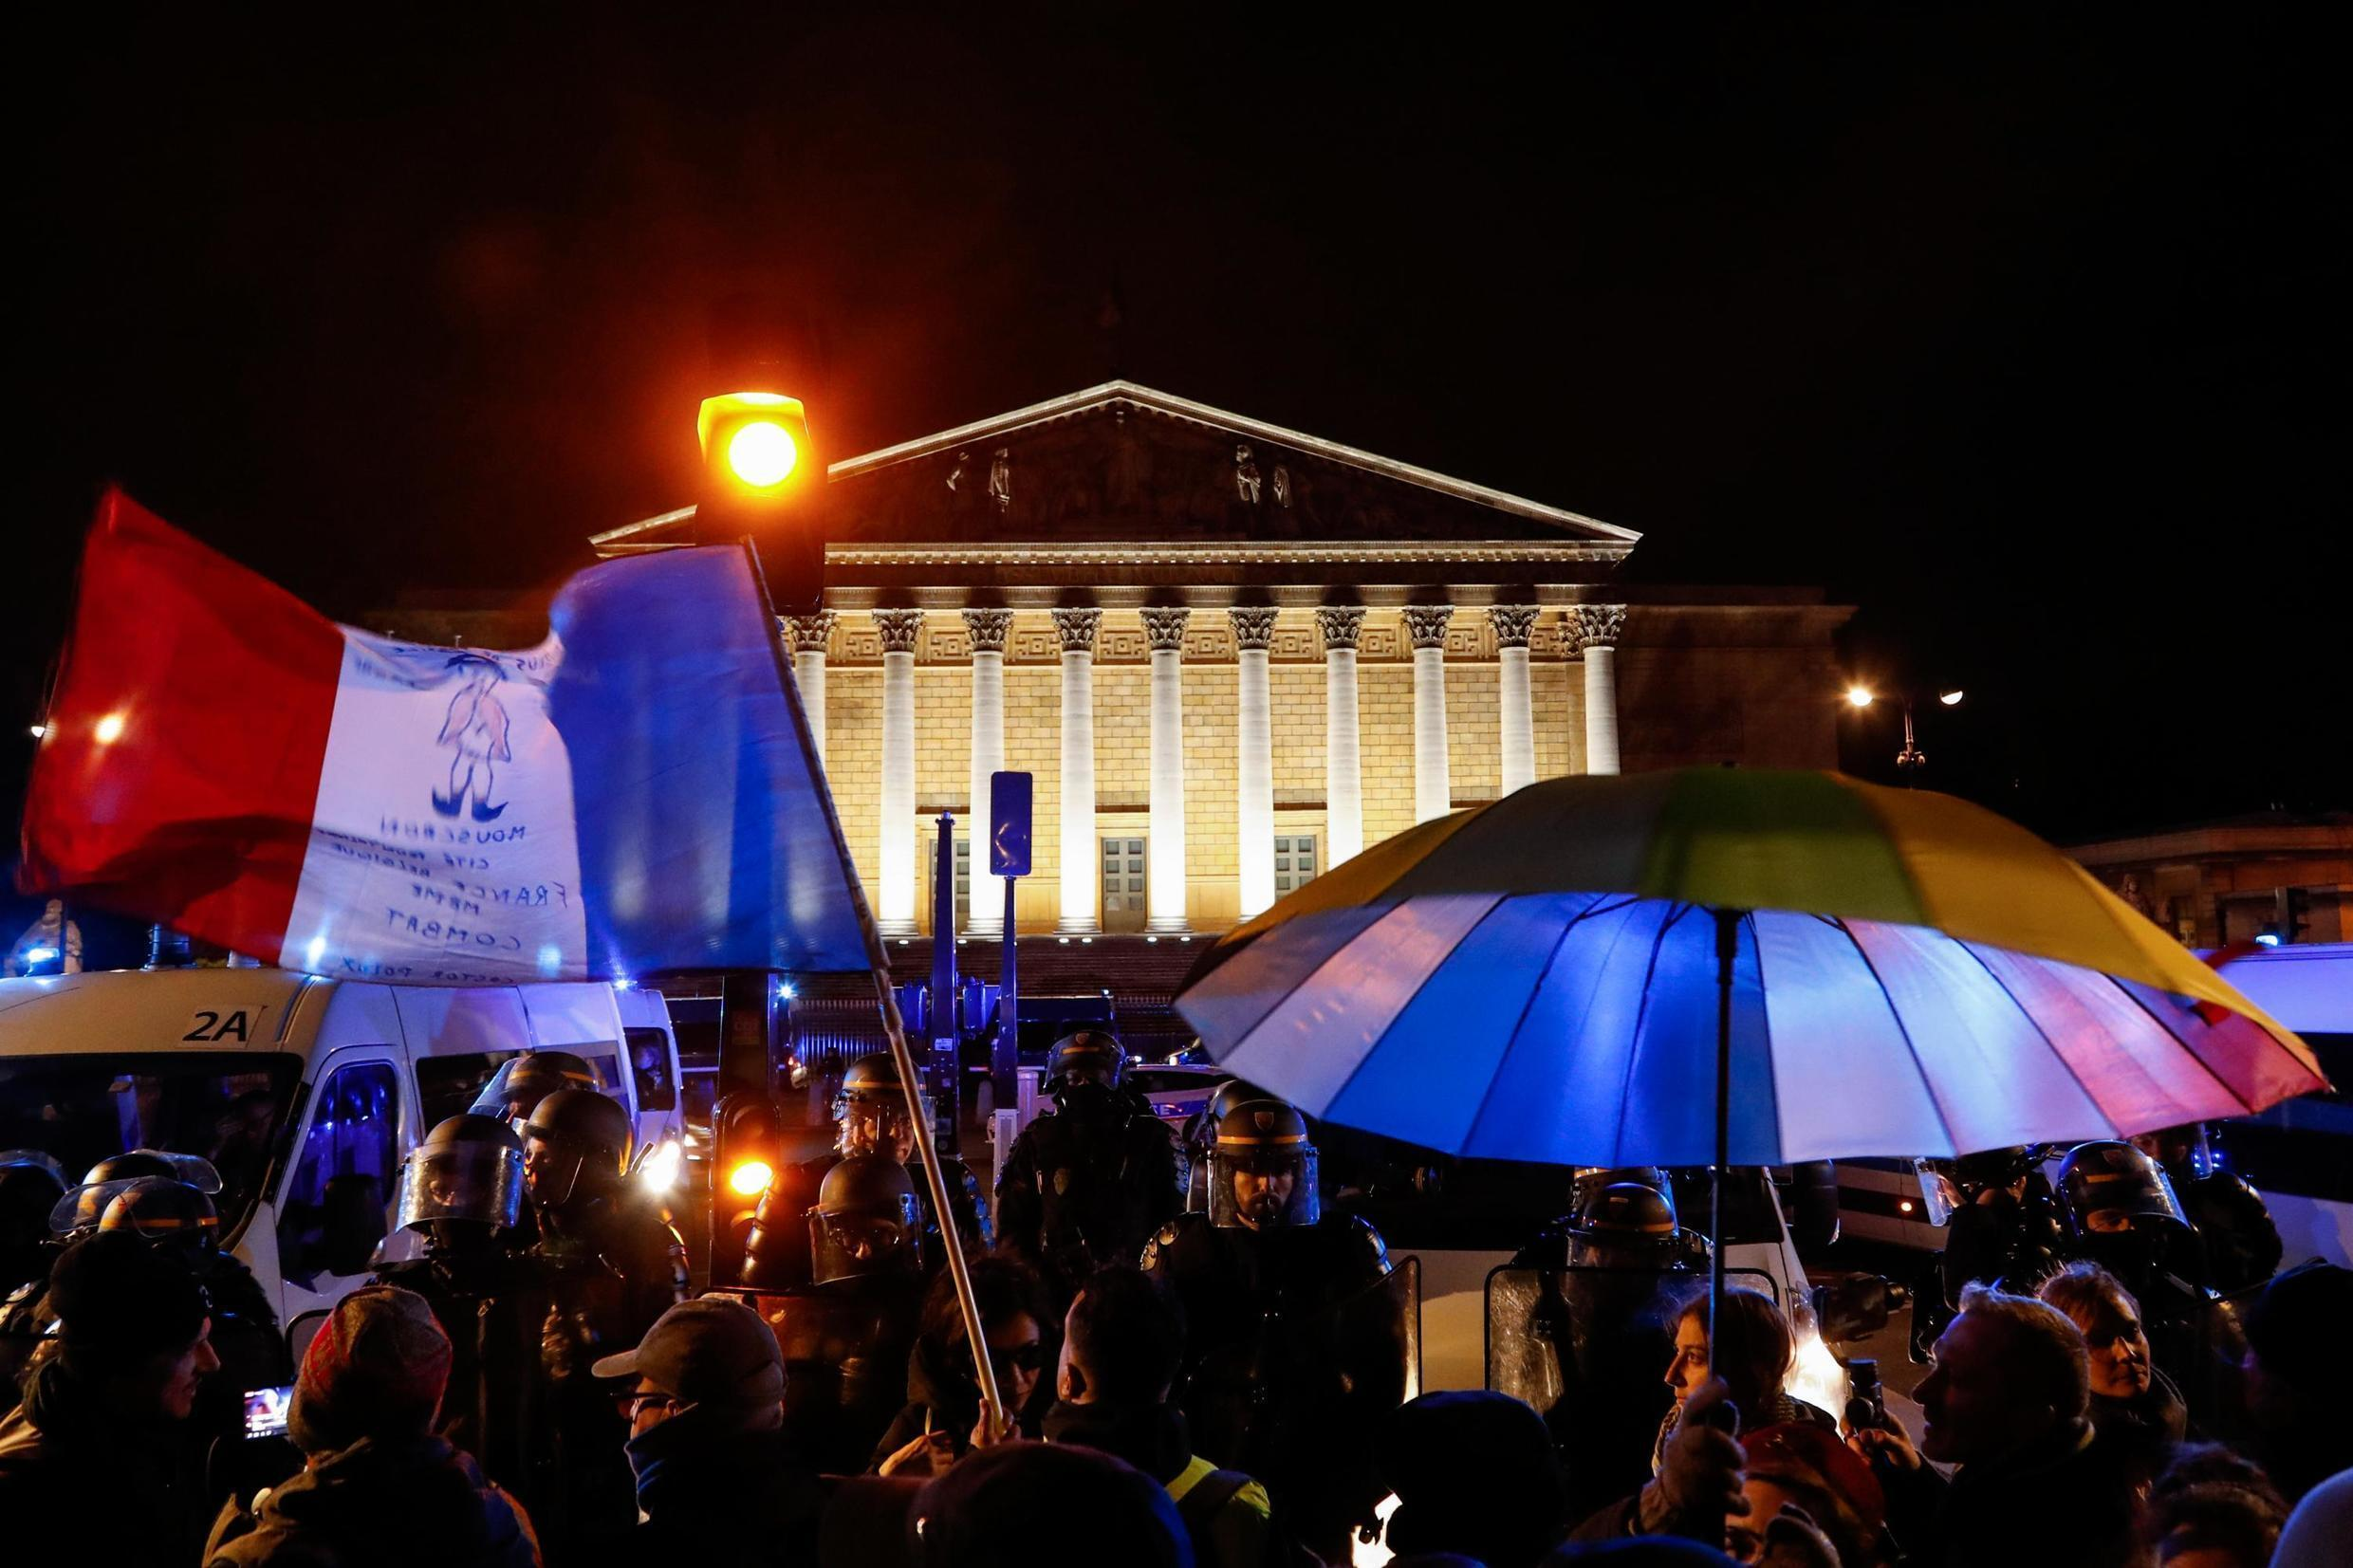 Demonstrators outside the French National Assembly protesting the government's decision to invoke the constitution's Article 49.3 to bypass parliament and pass the contested pension reform bill, 29 February 2020.